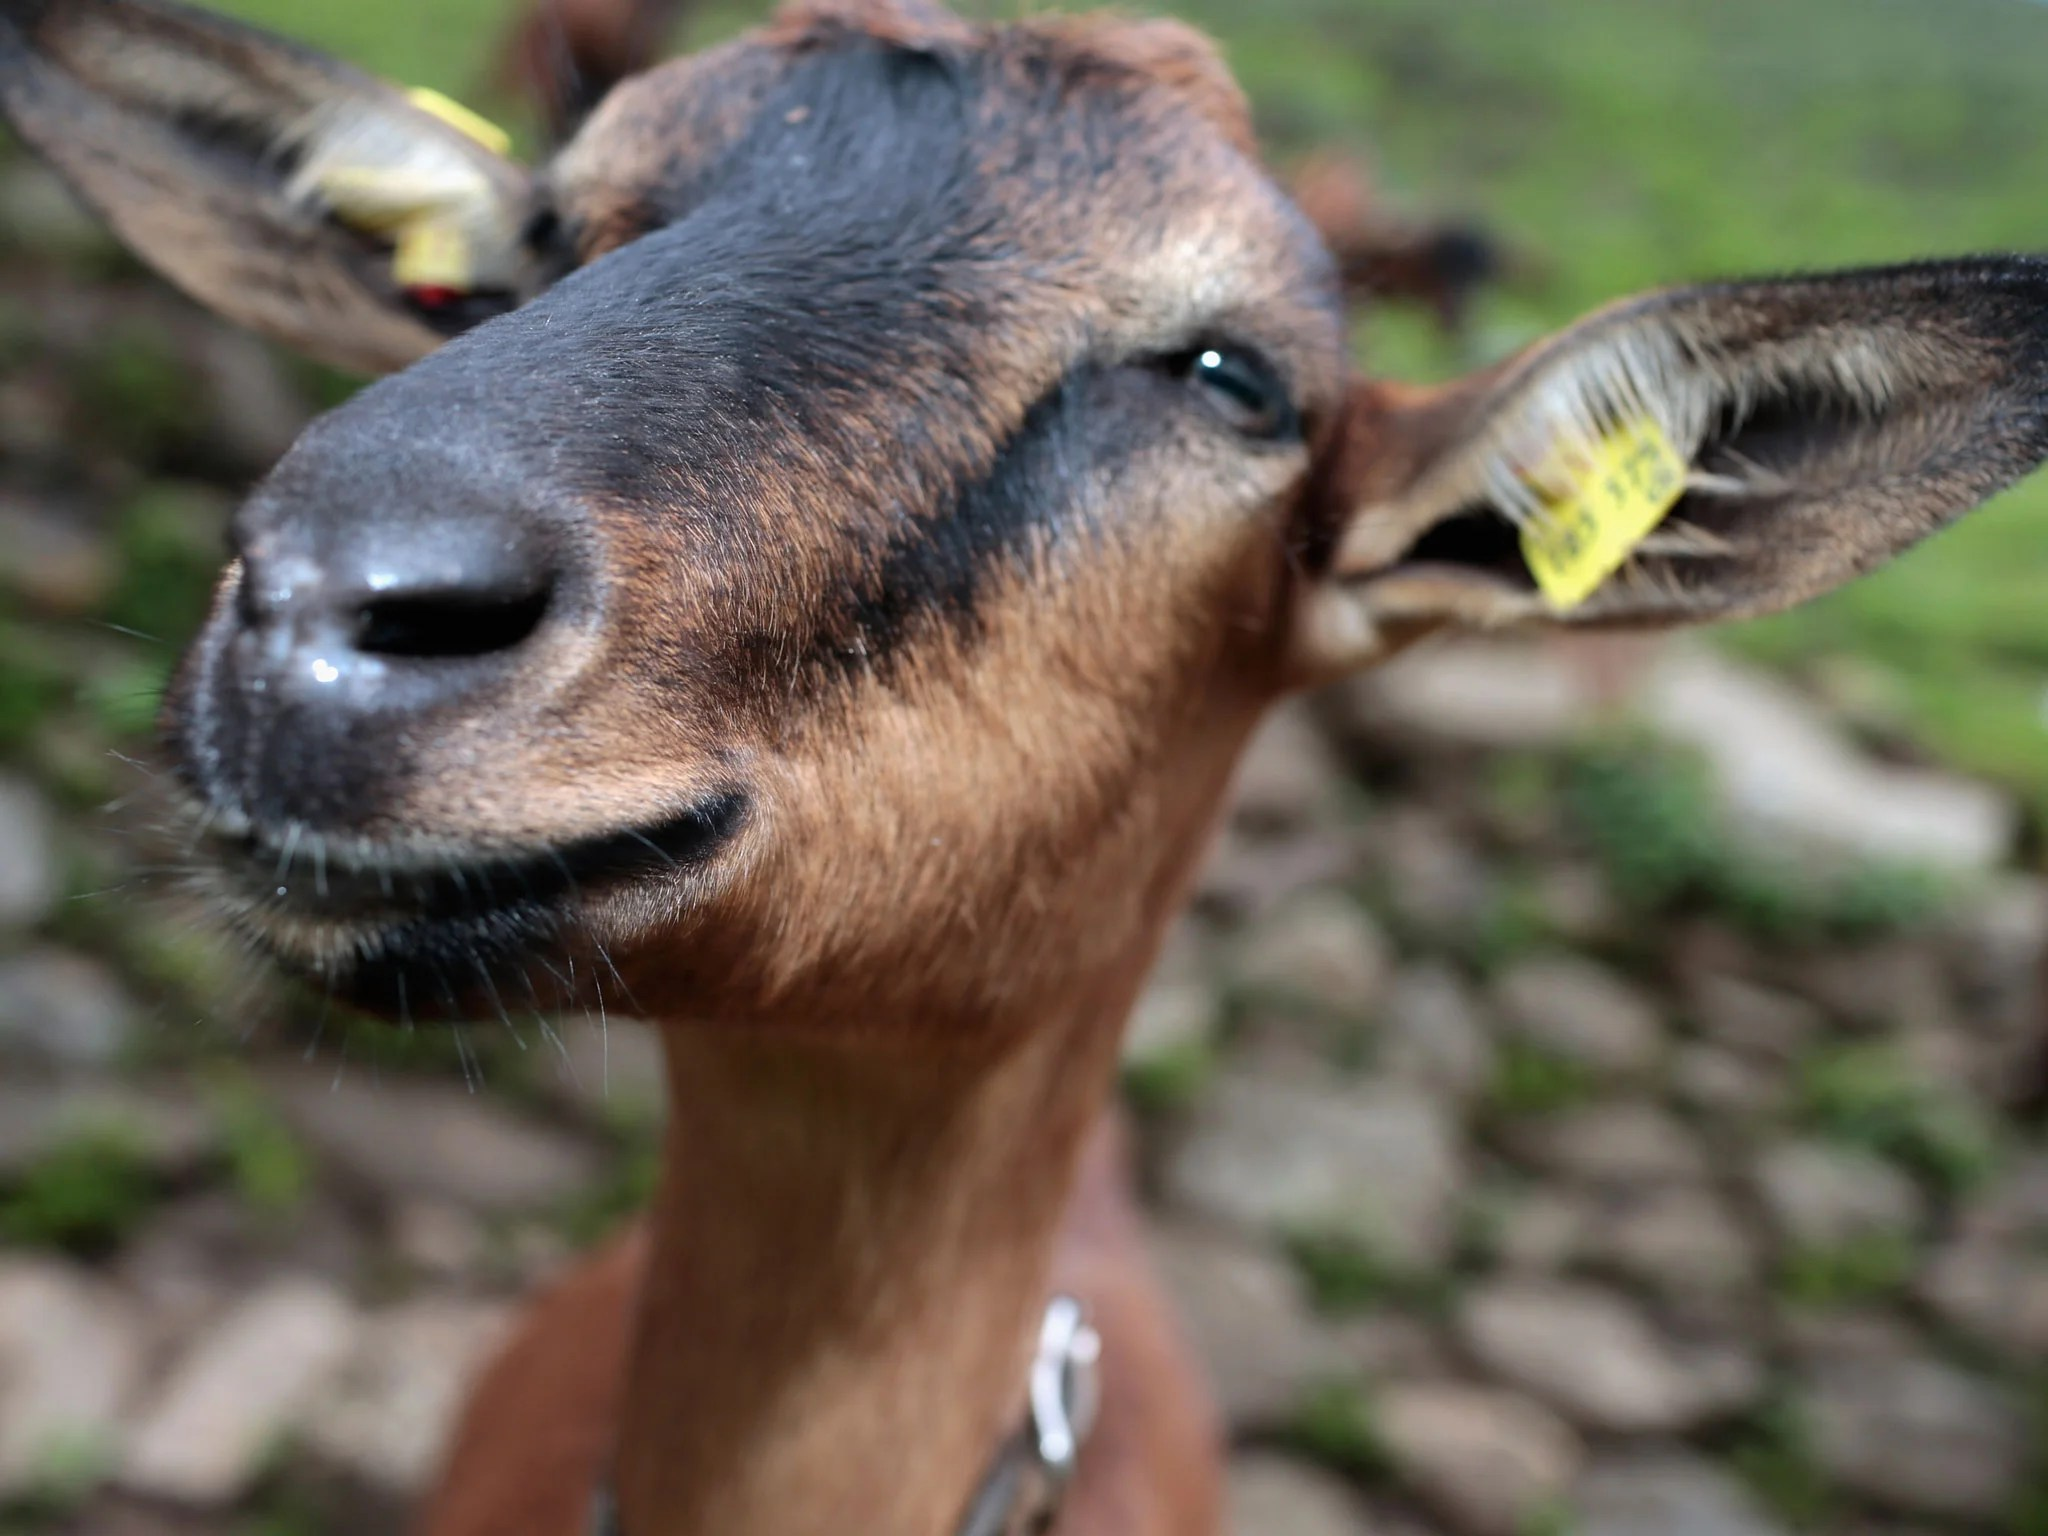 Nigerian Man Arrested For Having With A Goat Claims He Asked For Permission